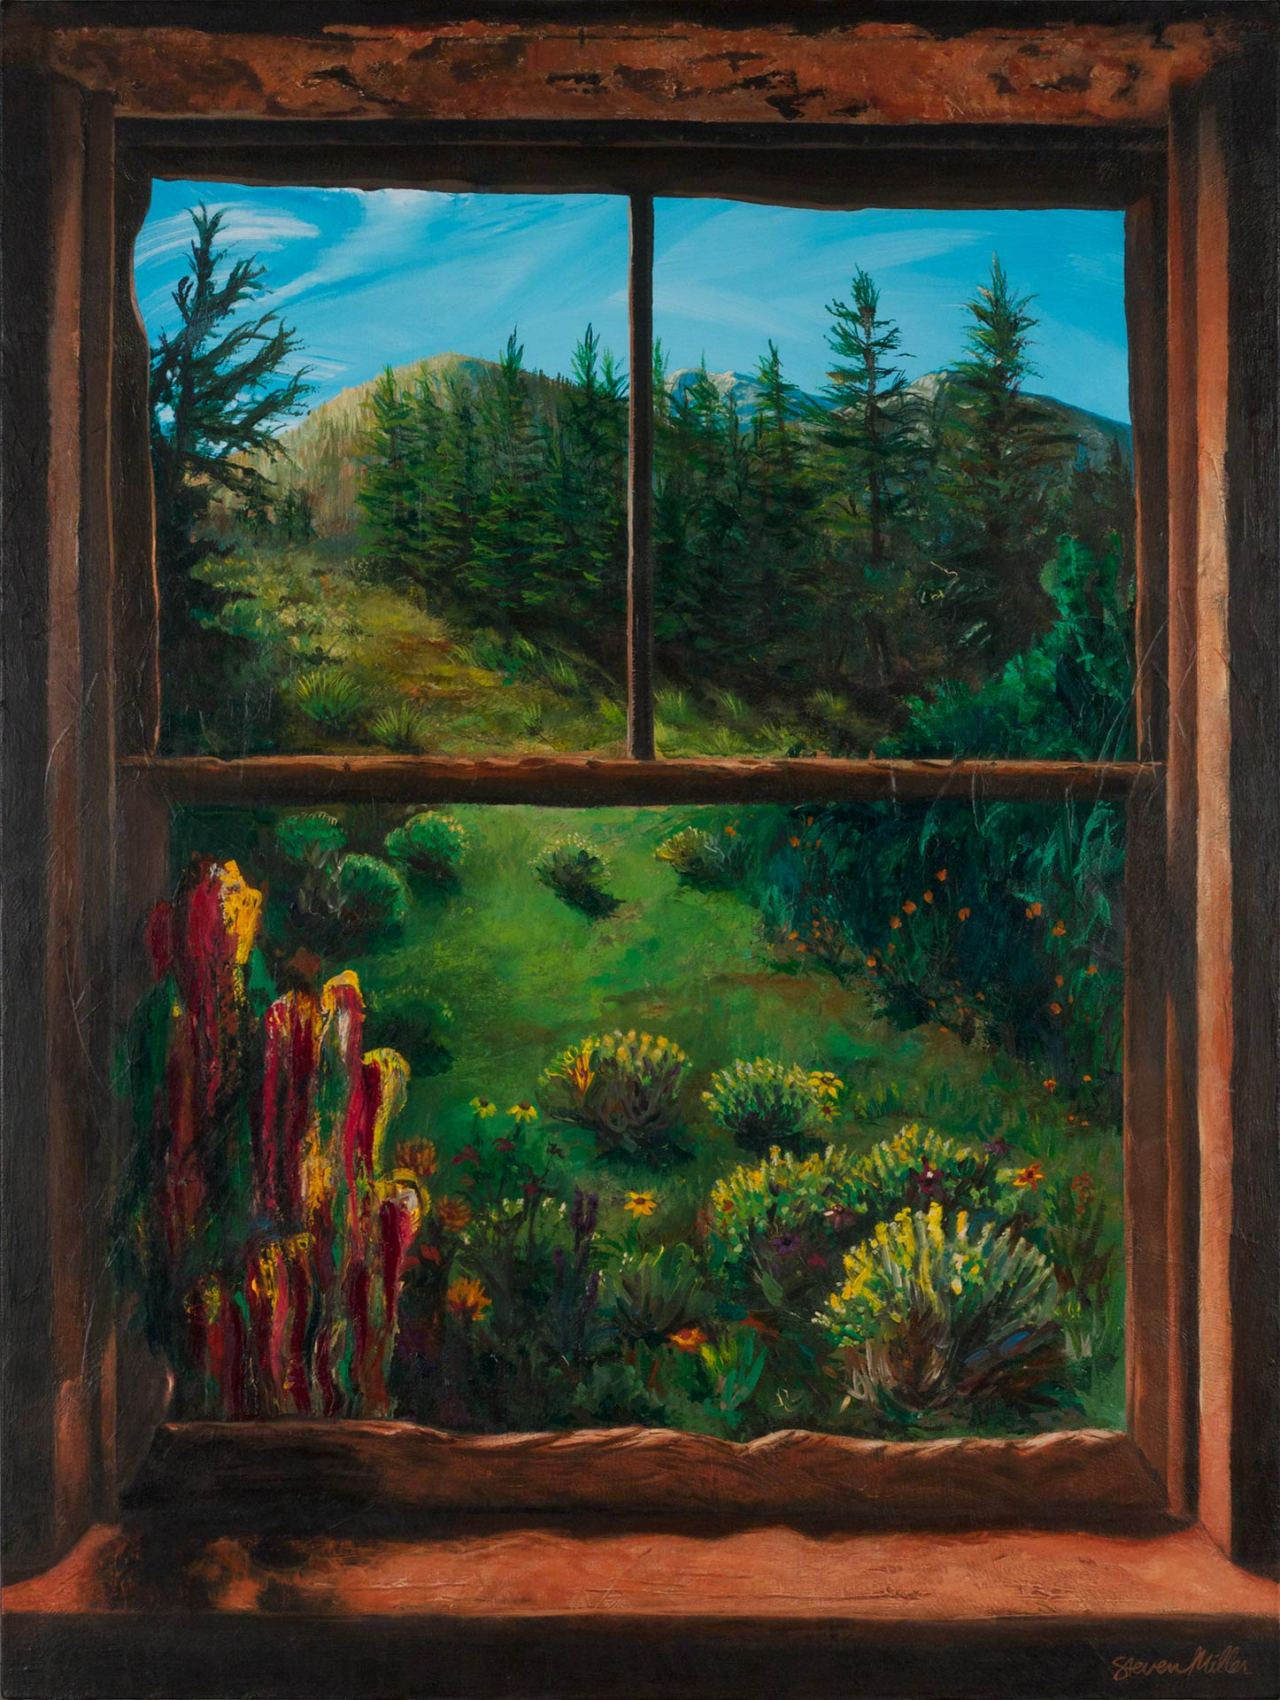 """Image of a painting by Steve Miller titled Room With A View, 30"""" x 40"""", acrylic on canvas, completed 10/8/13 © Steven Miller 2013"""